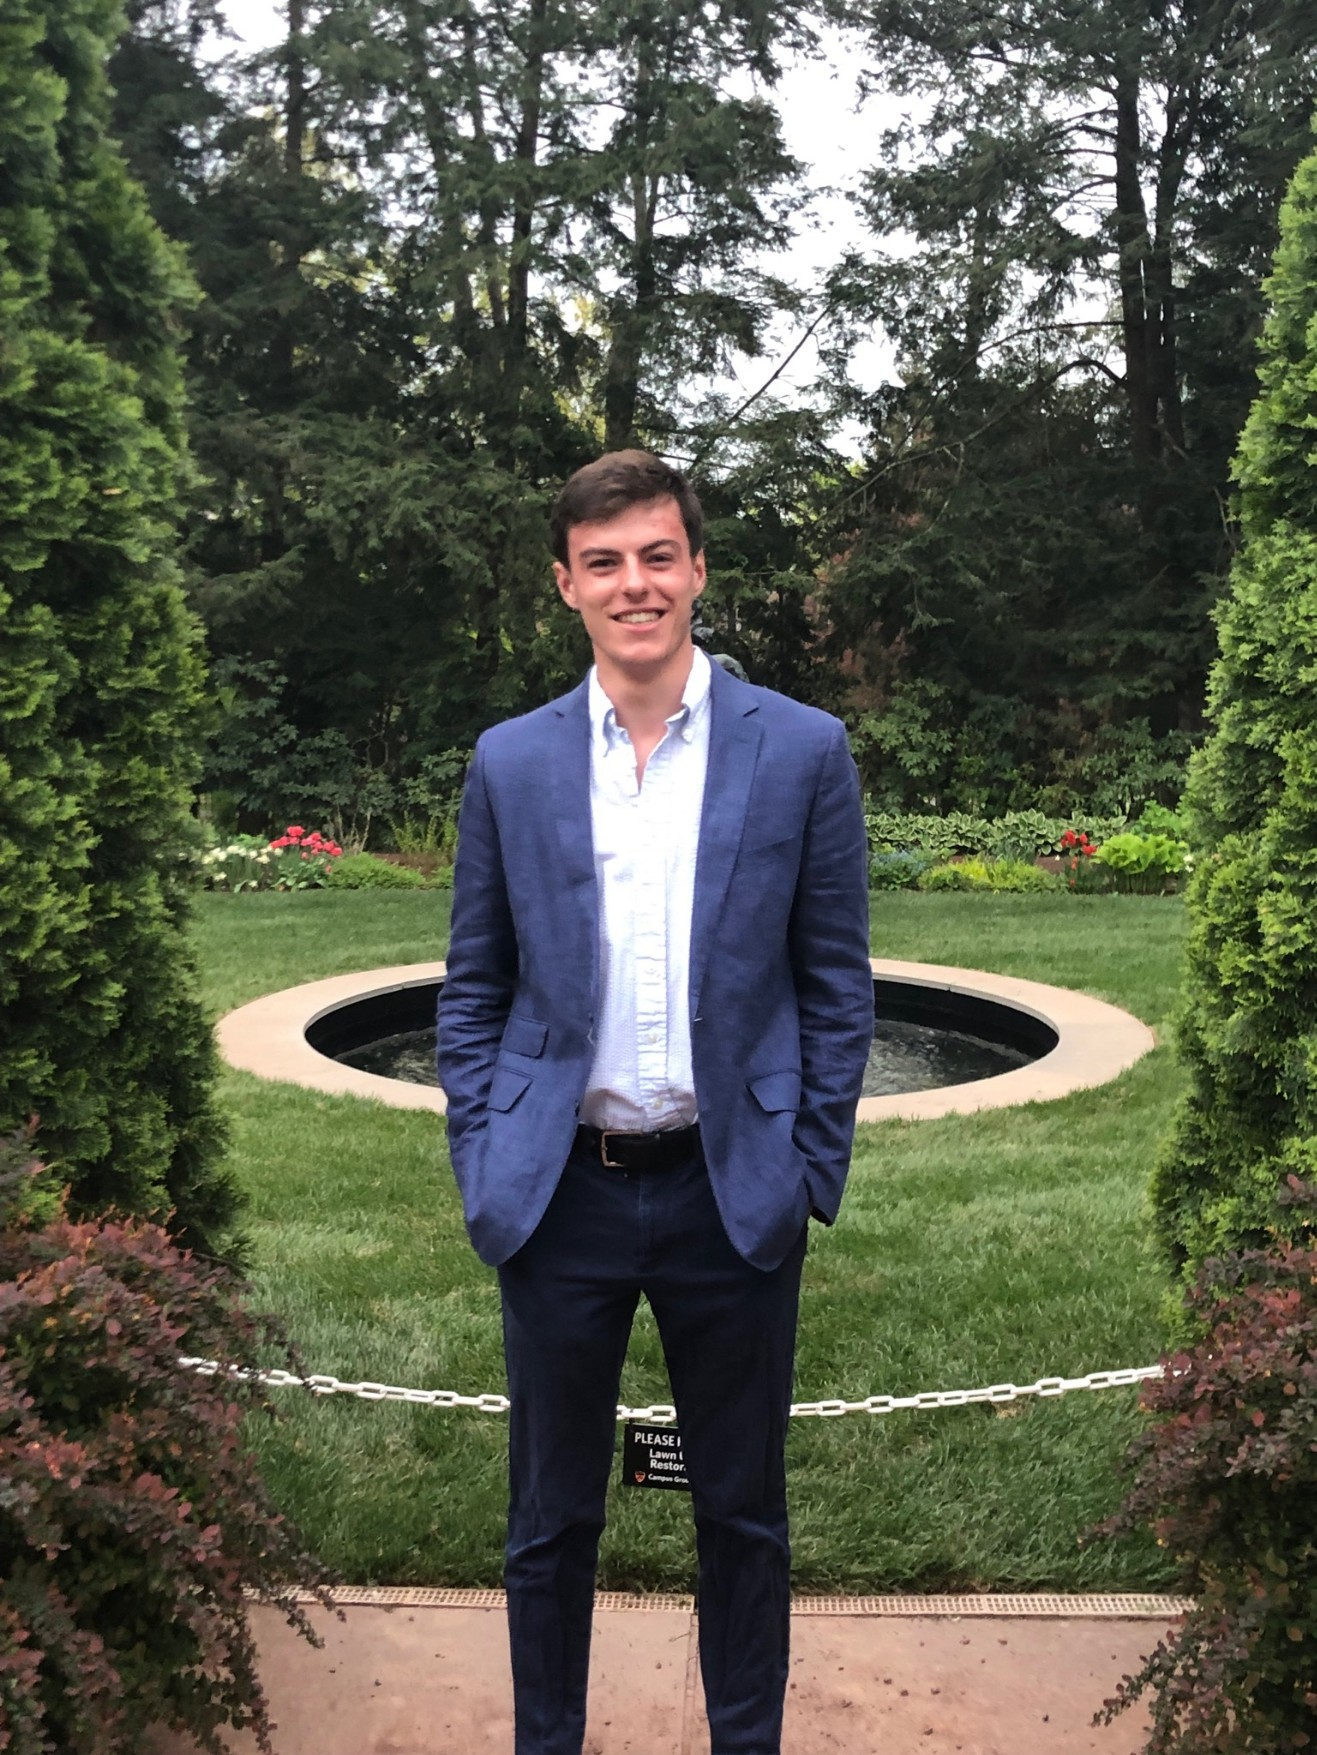 Eric Guerci, Student Member of the Board (2015-17)